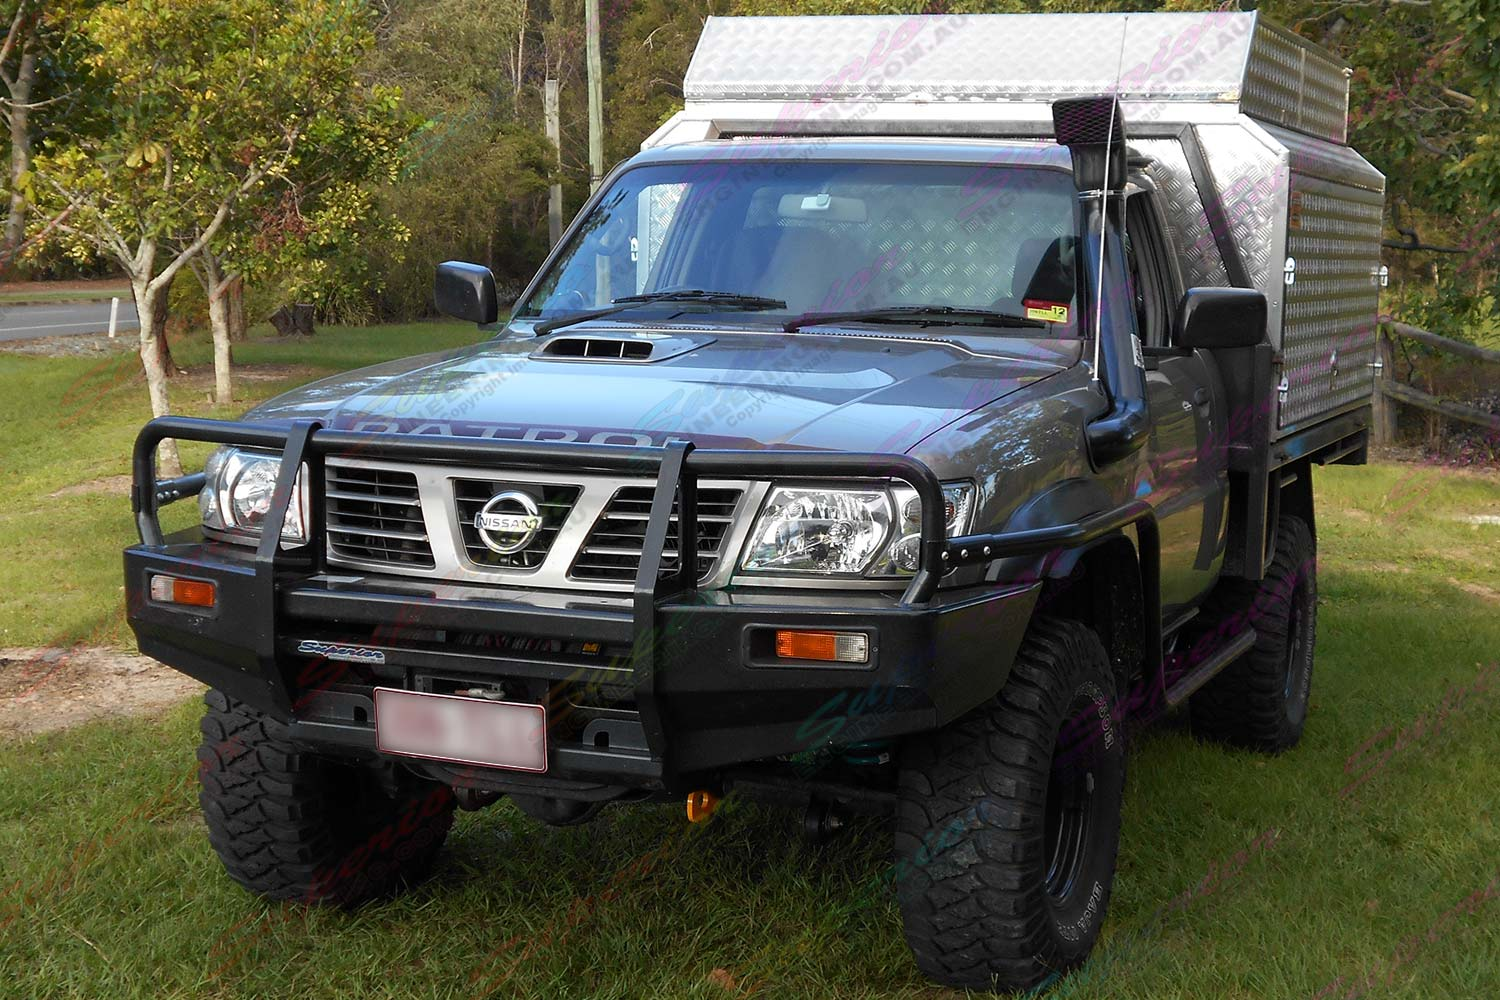 nissan patrol gu ute 3 inch profender airbag lift kit 4x4 airbags. Black Bedroom Furniture Sets. Home Design Ideas